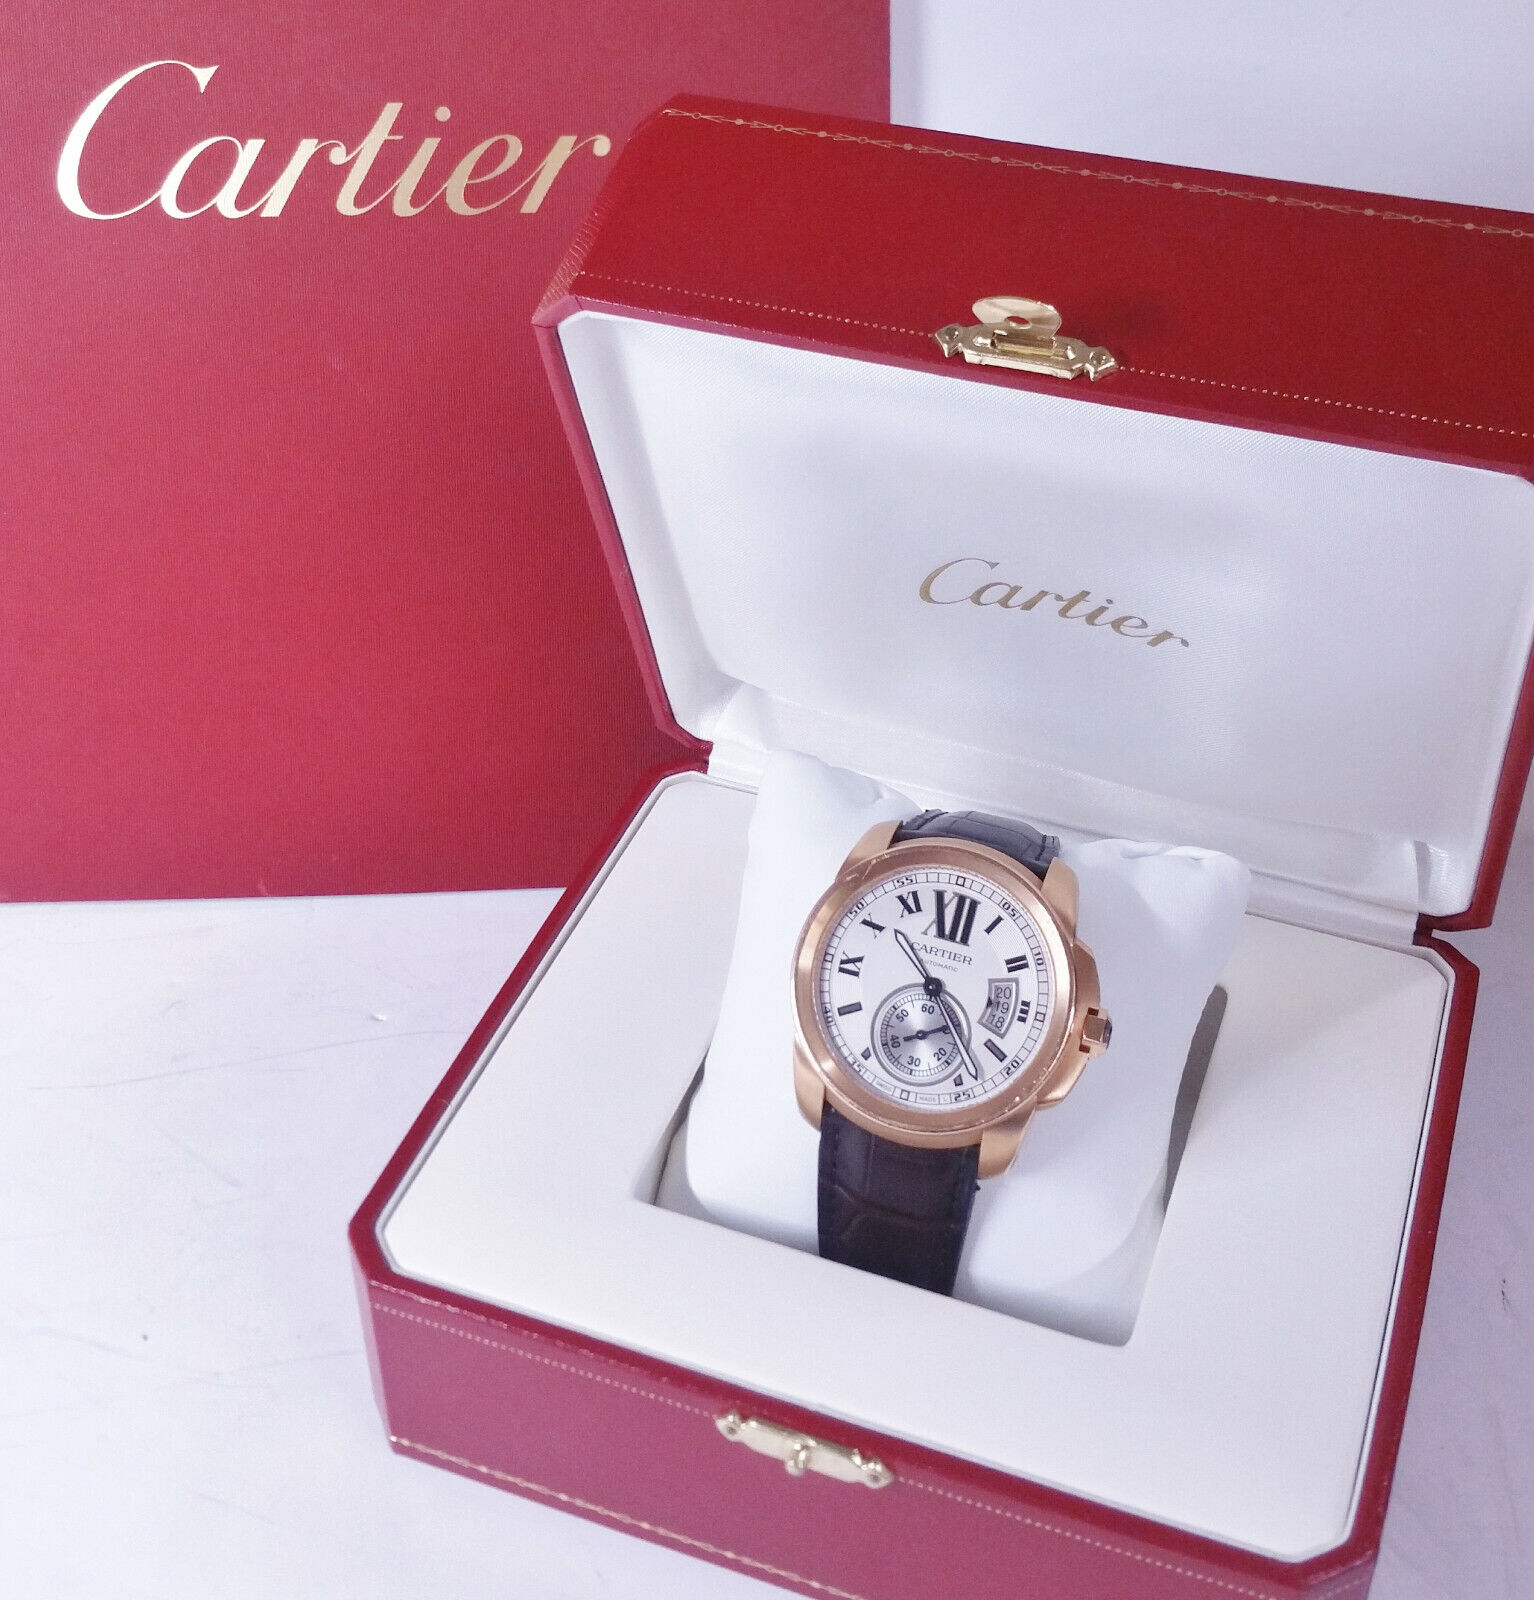 Giant Cartier Calibre 18k Rose Gold Mens Watch w Gold Deployant Clasp Box Papers - watch picture 1